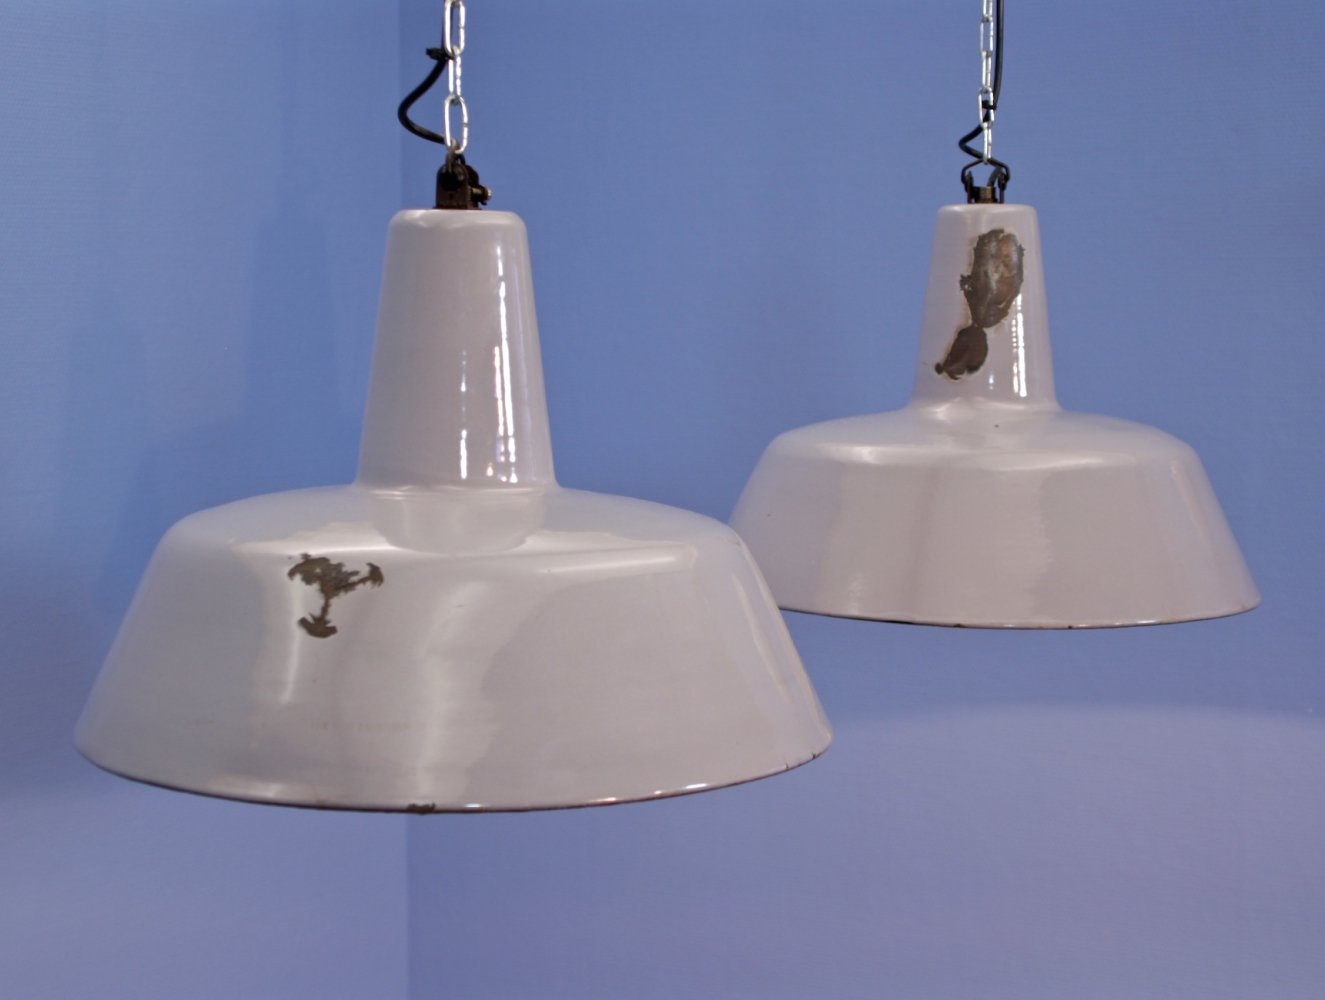 Set of 2 dutch enamelled hanging lamps in grey by Philips, 1960s